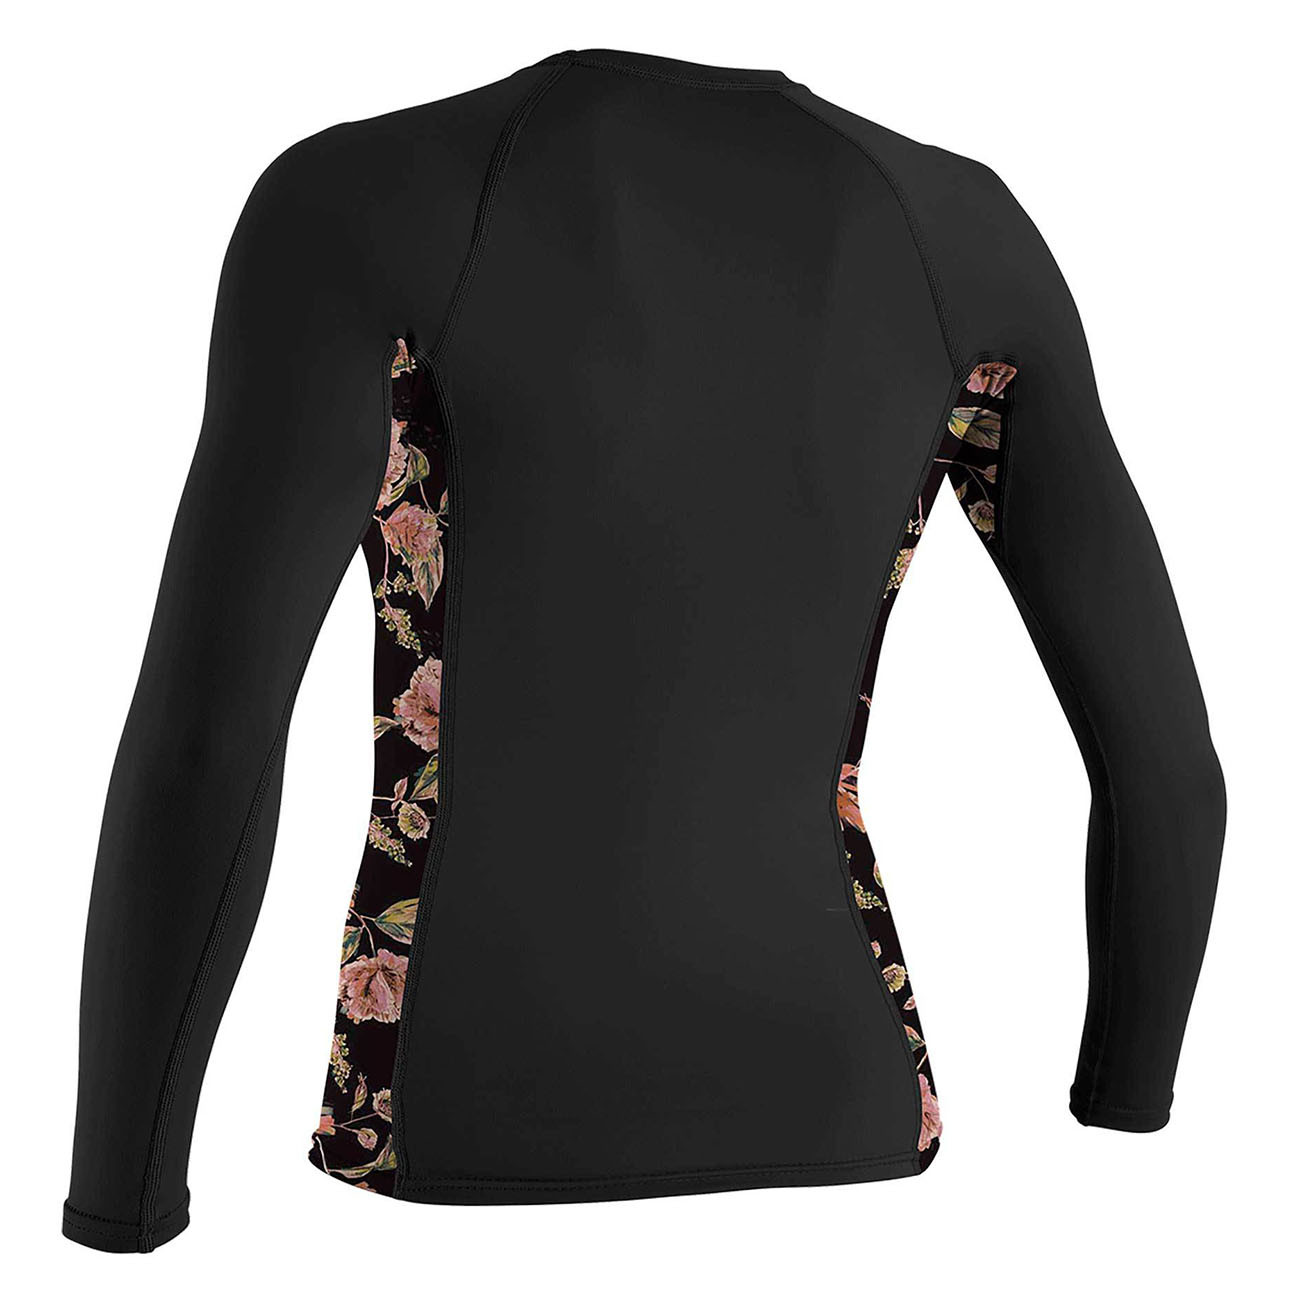 Lycra O'Neill Wms Side Print L/s Rash Guard